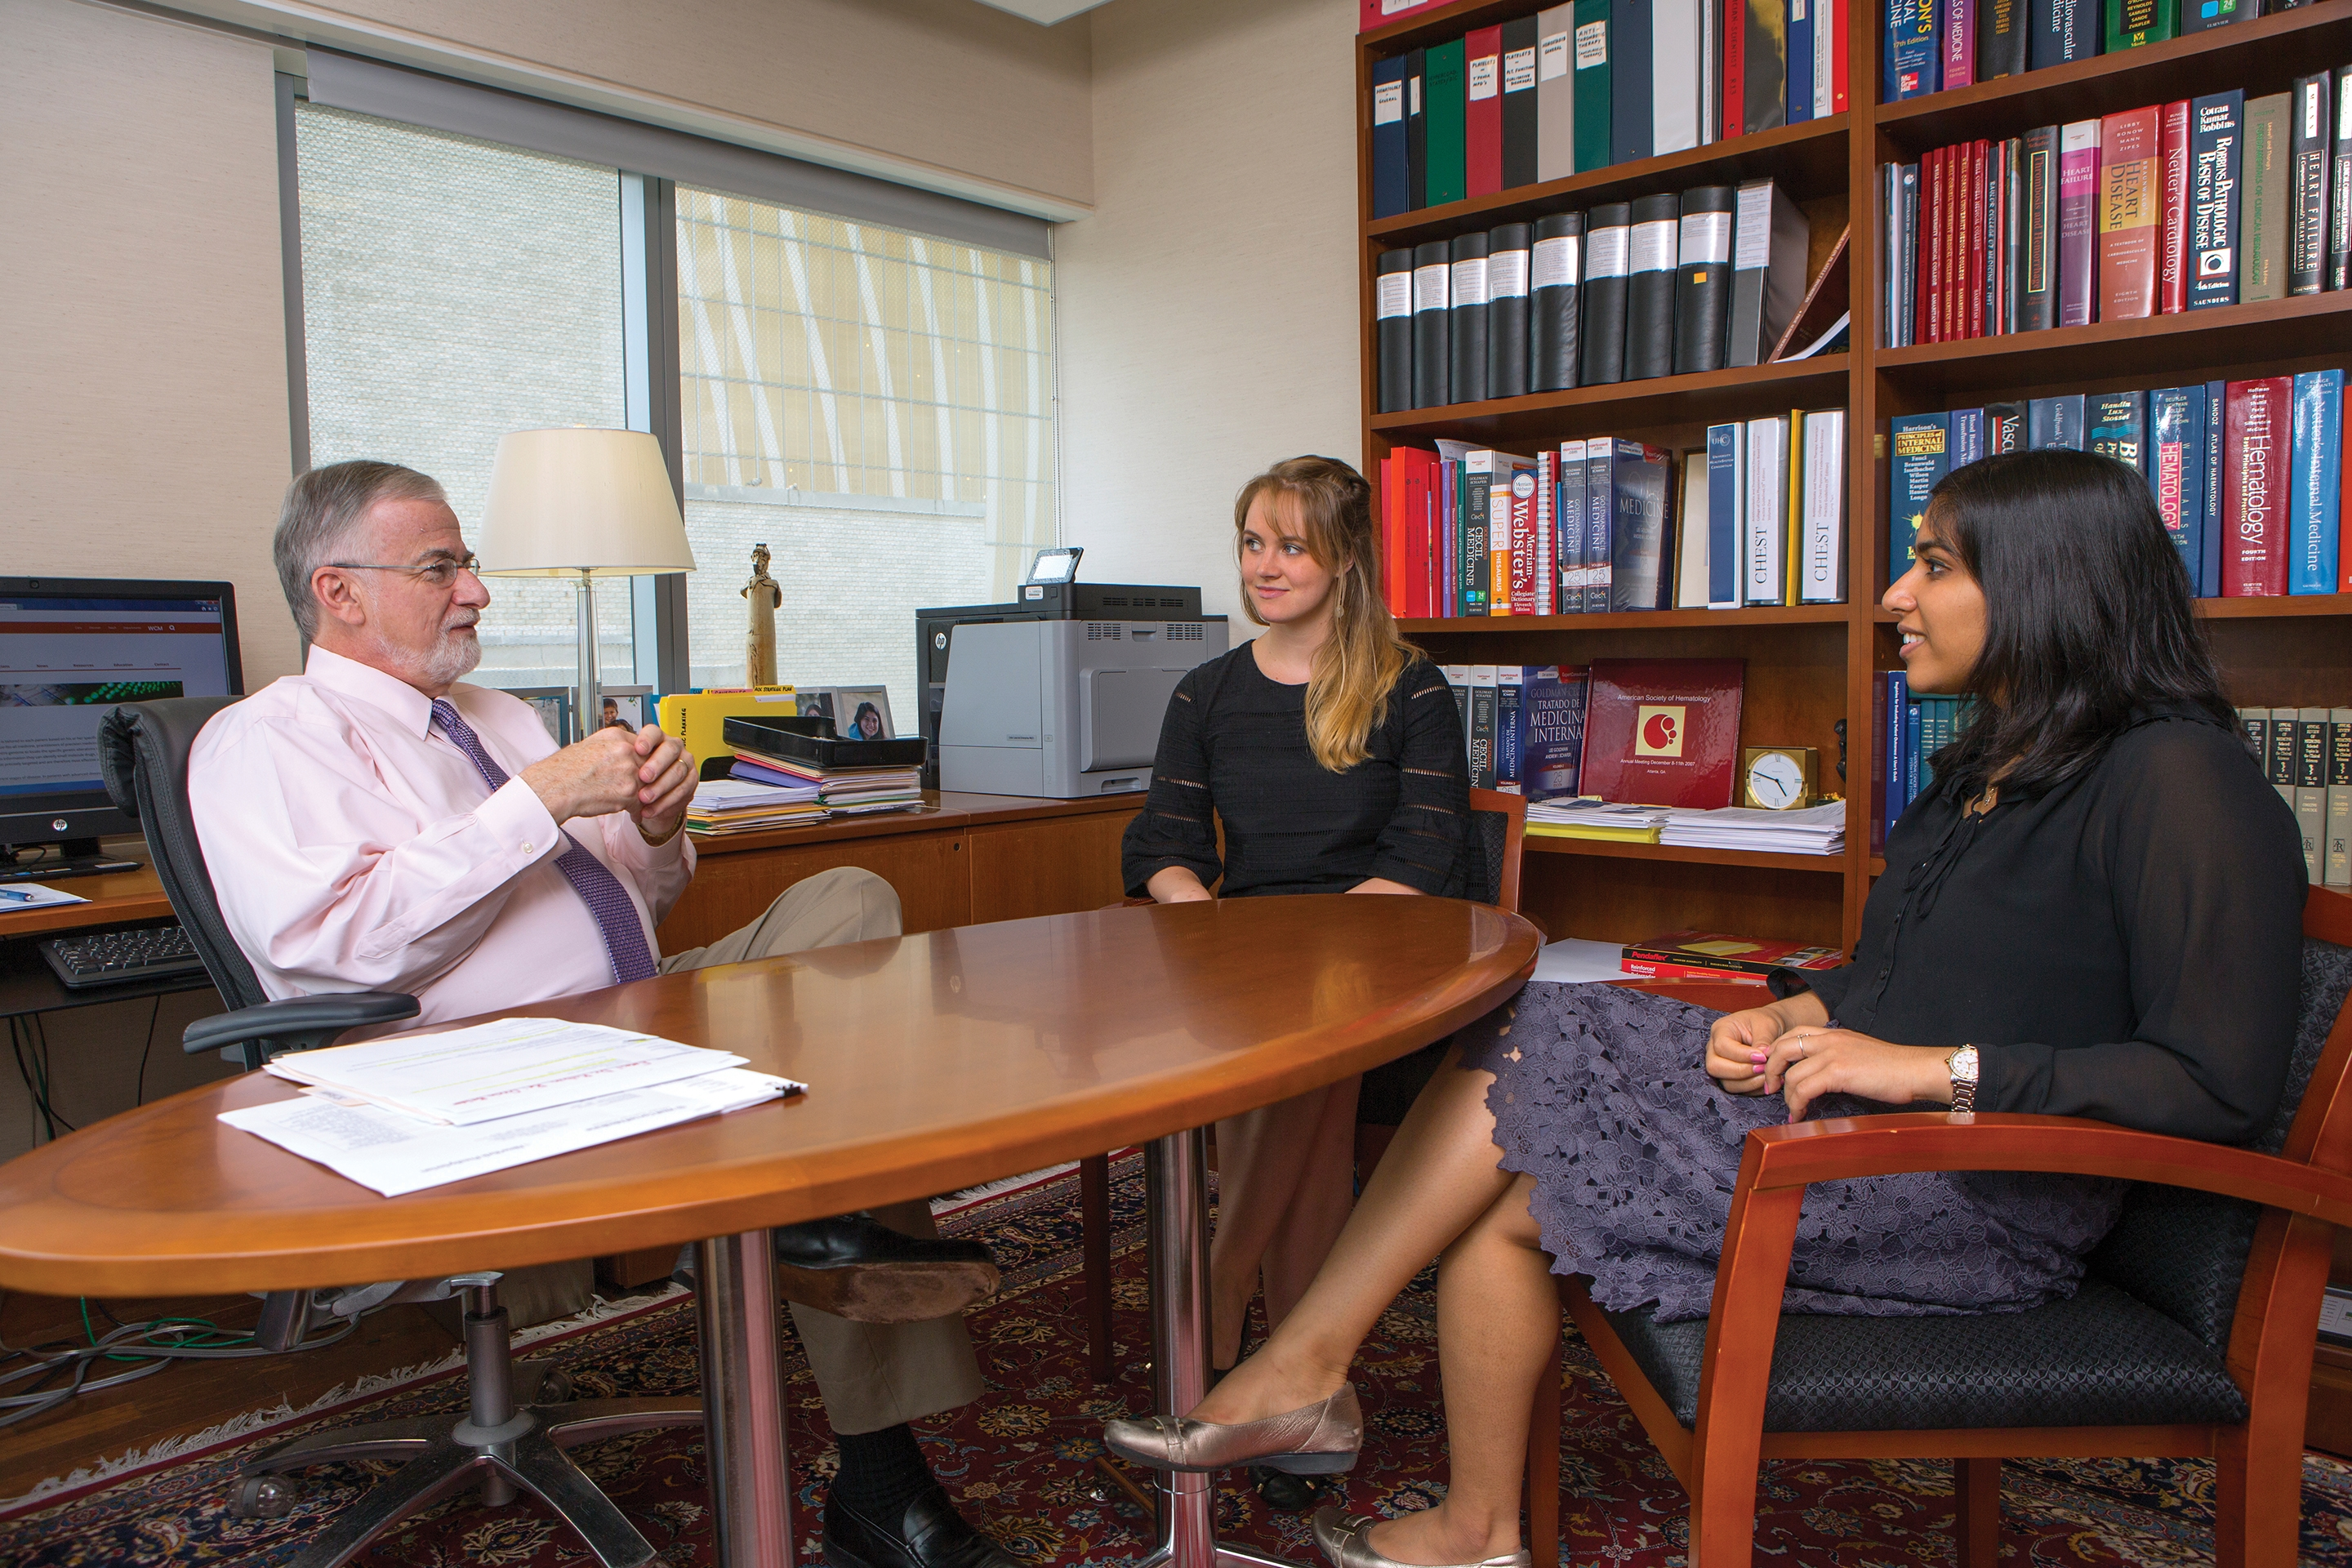 Dr. Andrew Schafer (left), with students Caitlin Gribbin '18 (center) and Aditi Gupta '18